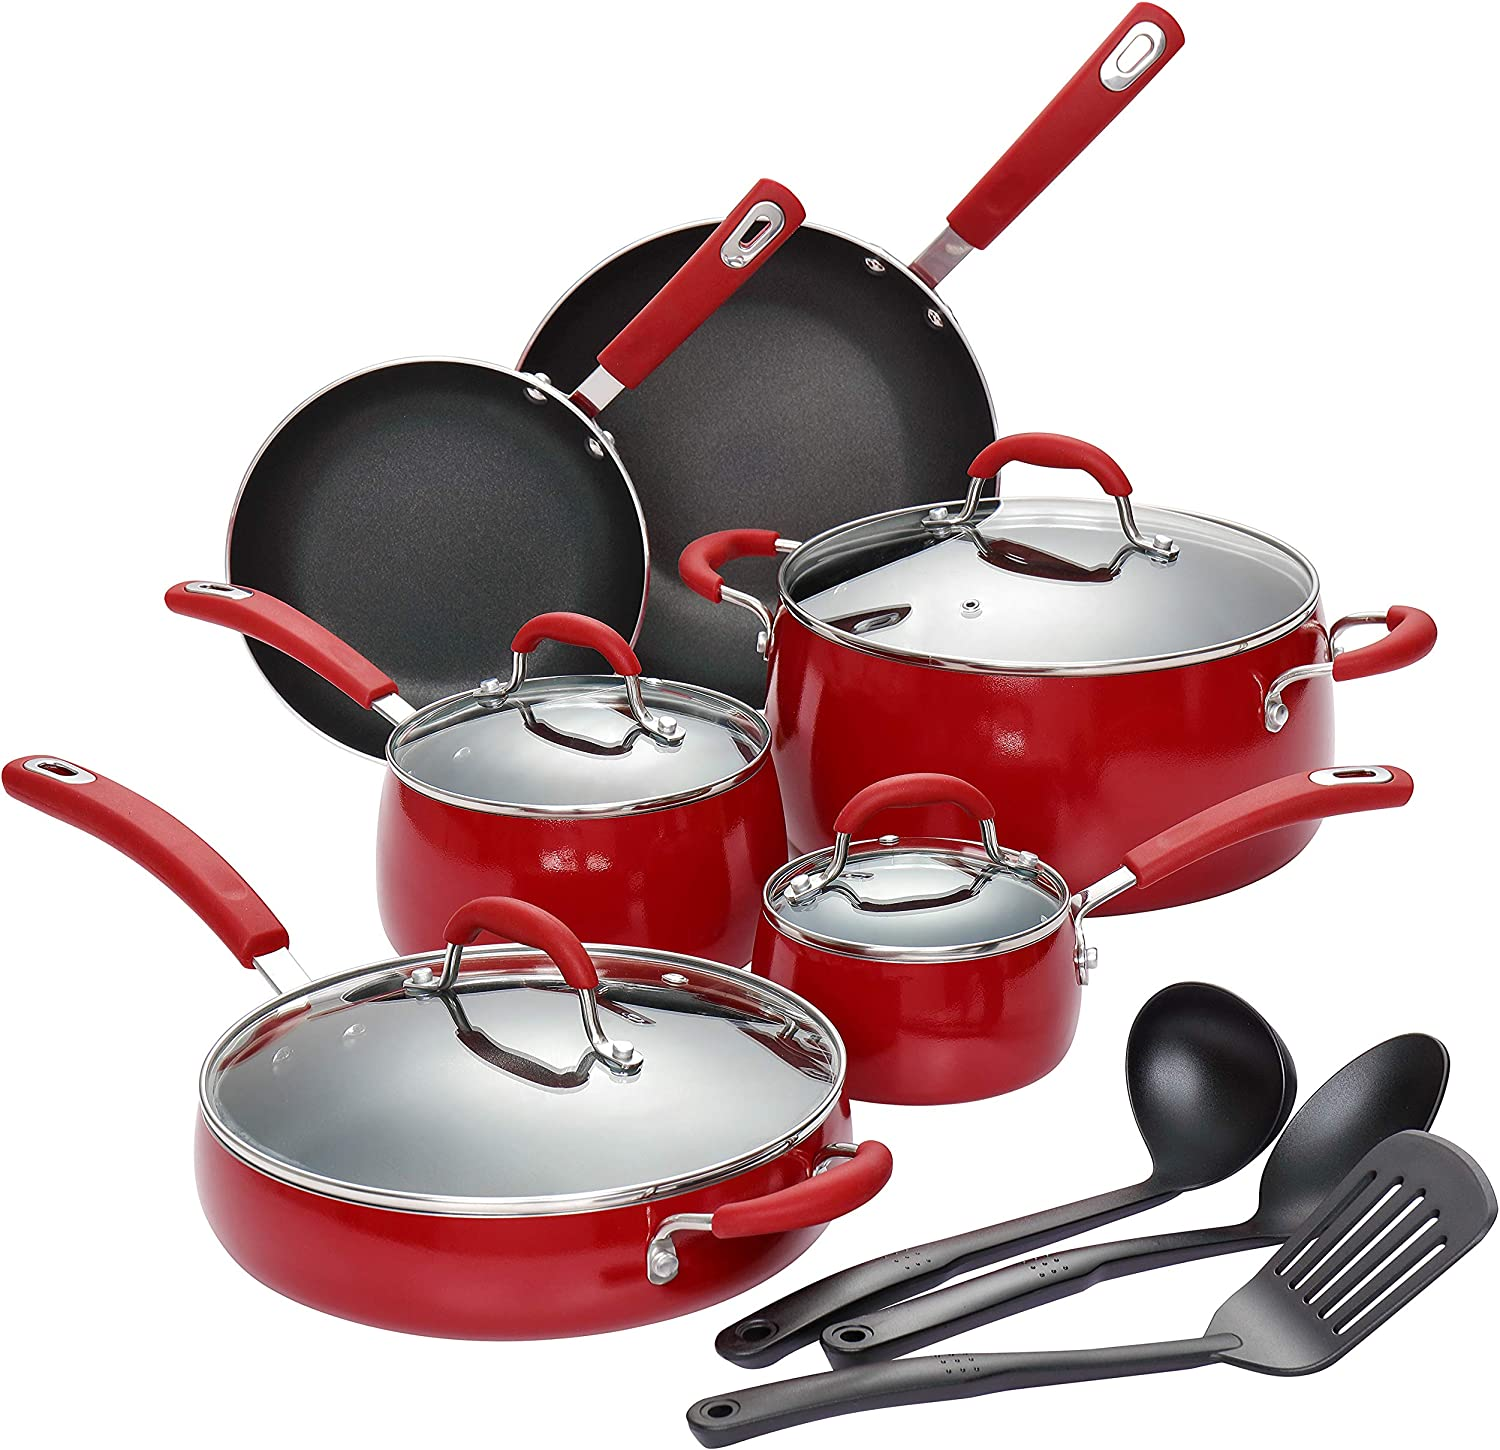 Finnhomy Super Value Hard-Anodized Aluminum Cookware Set Double Nonstick Coating Kitchen Pots and Pan Set 13-Piece with Red Handle Professional for Home Restaurant